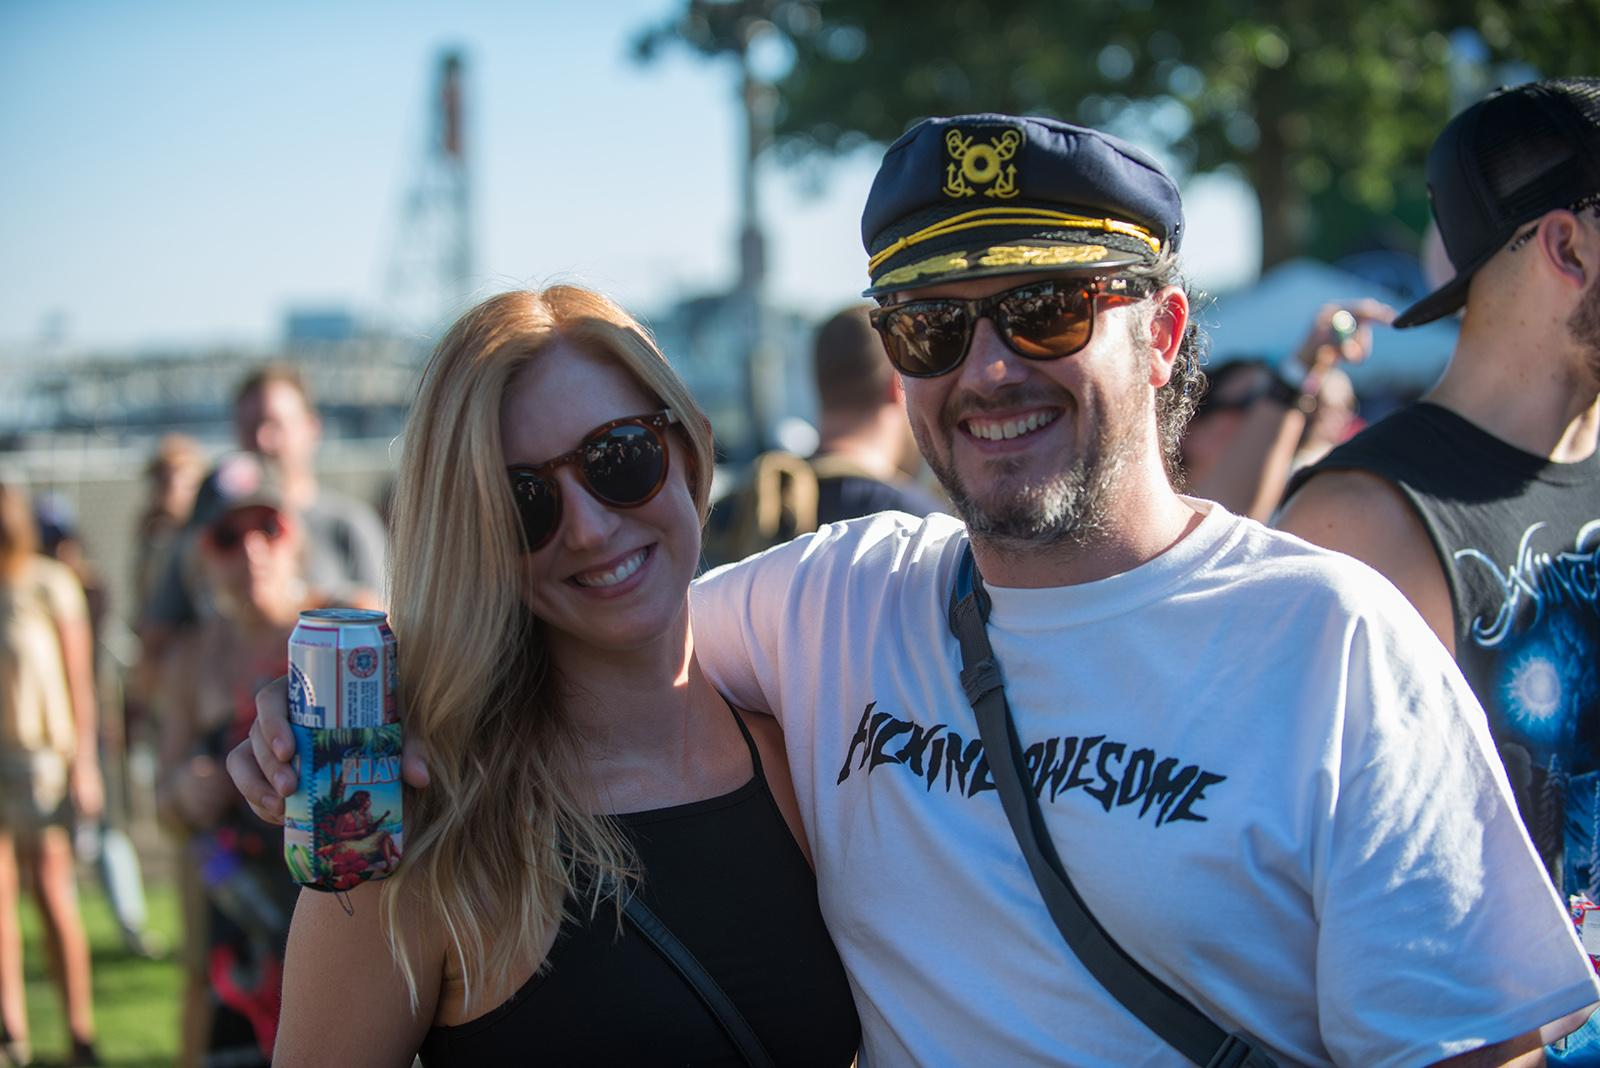 Music fans filled Tom McCall Waterfront Park on Saturday for day 1 of Music Fest NW presents Project Pabst, a combination of two Portland summer music festivals featuring Iggy Pop, Father John Misty, Lizzo, FIDLAR, Die Antwoord, The Last Artful Dodgr, Pup, Filthy Friends, and White Reaper. (Photo by Tristan Fortsch, KATU News on 8/26/2017)